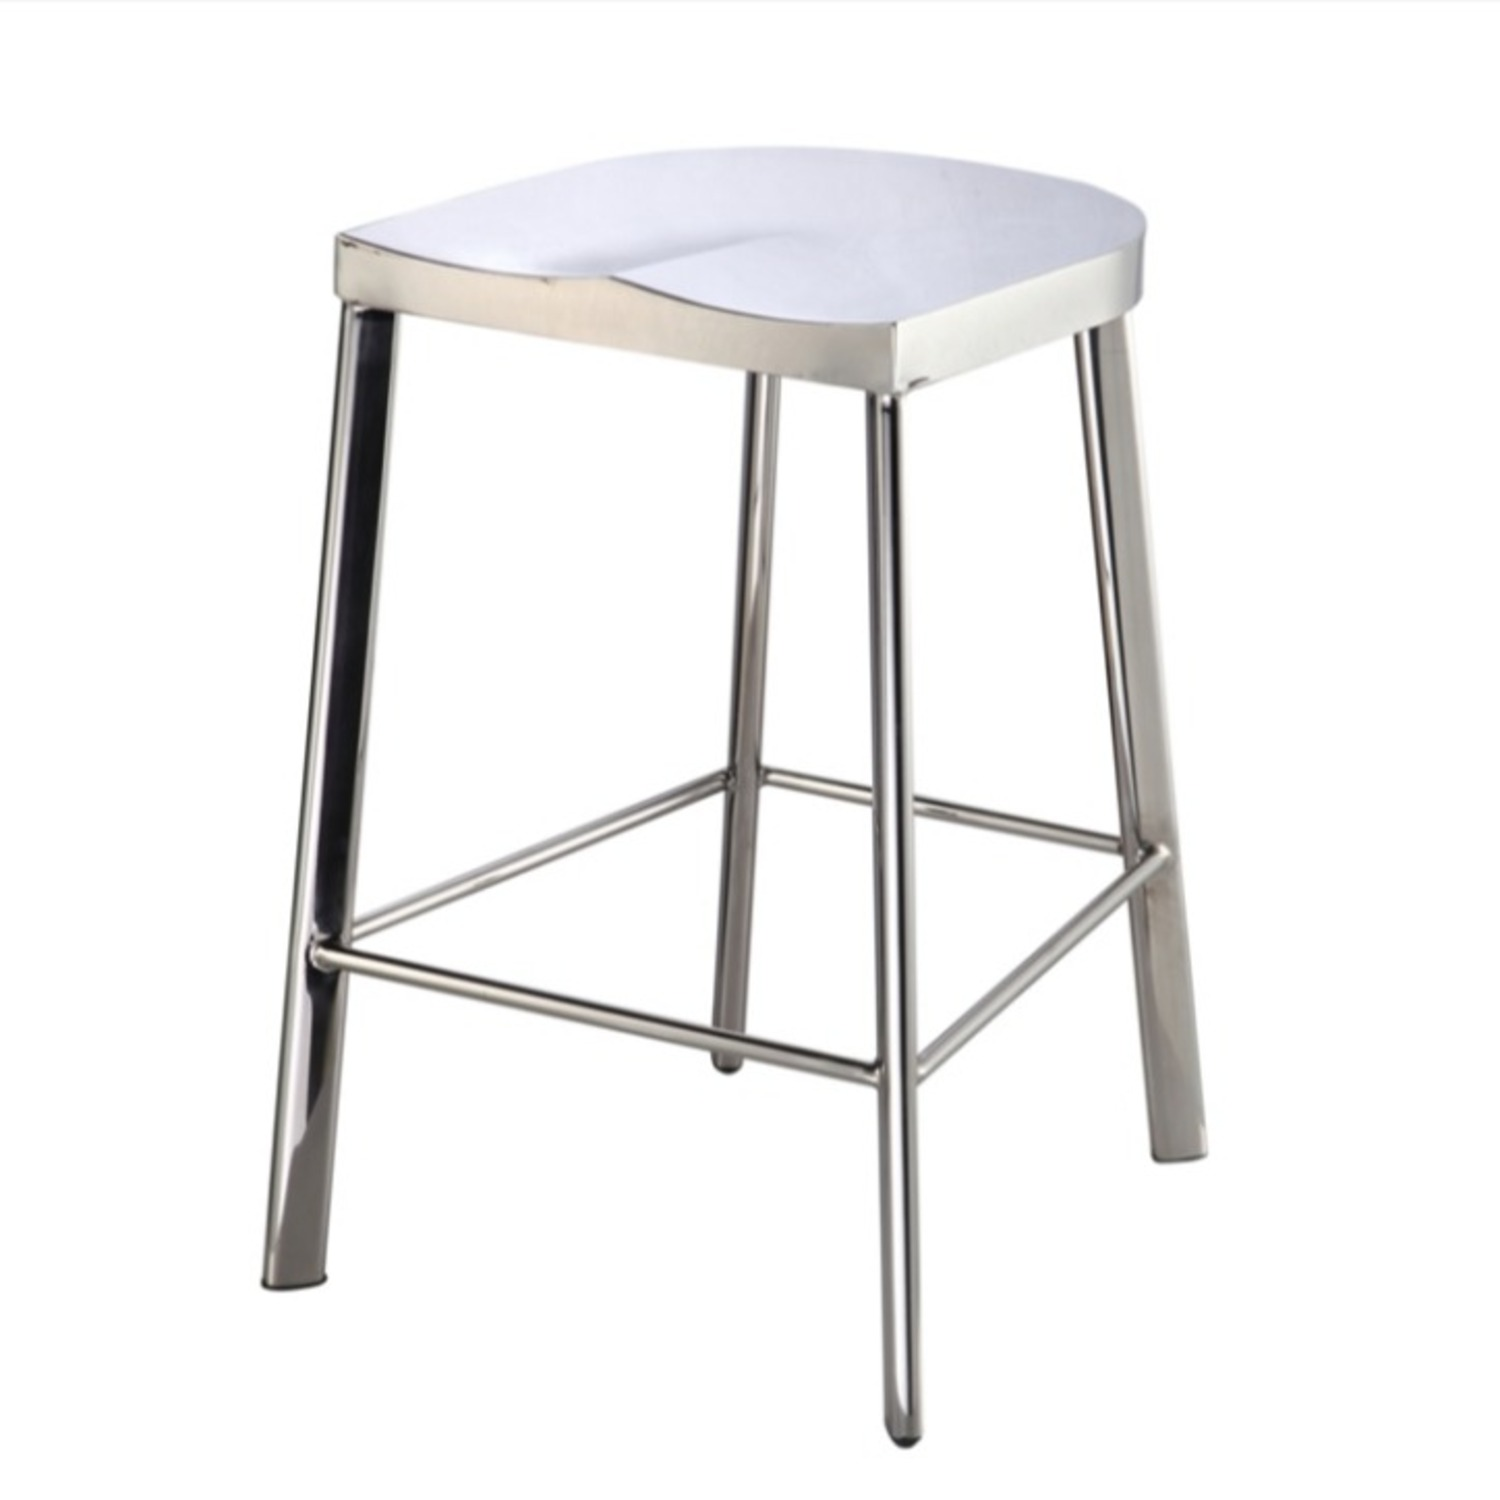 Modern Counter Stool In Silver Stainless Steel  - image-4